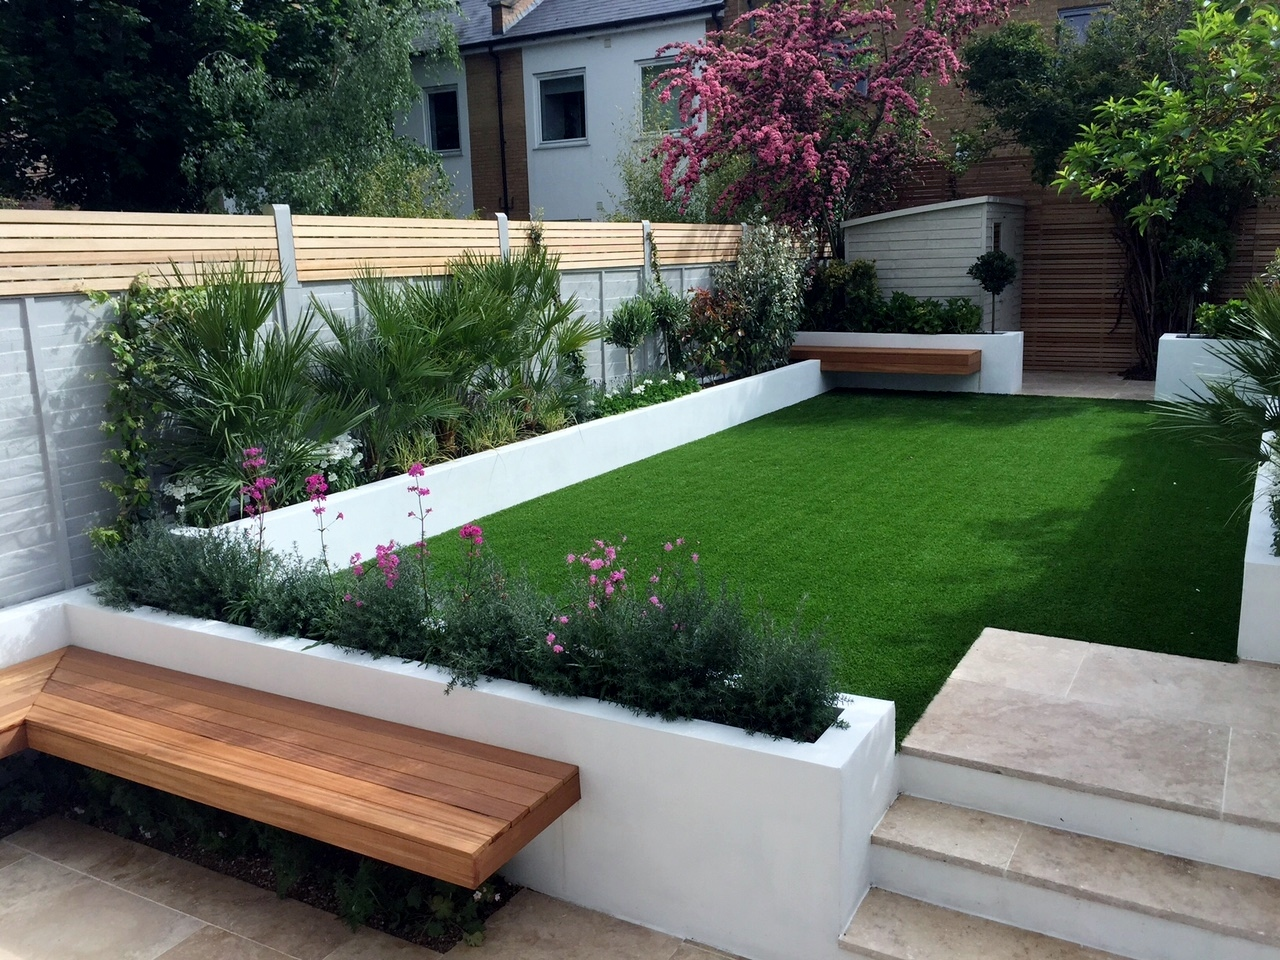 Modern garden design ideas fulham chelsea battersea for Landscape design london